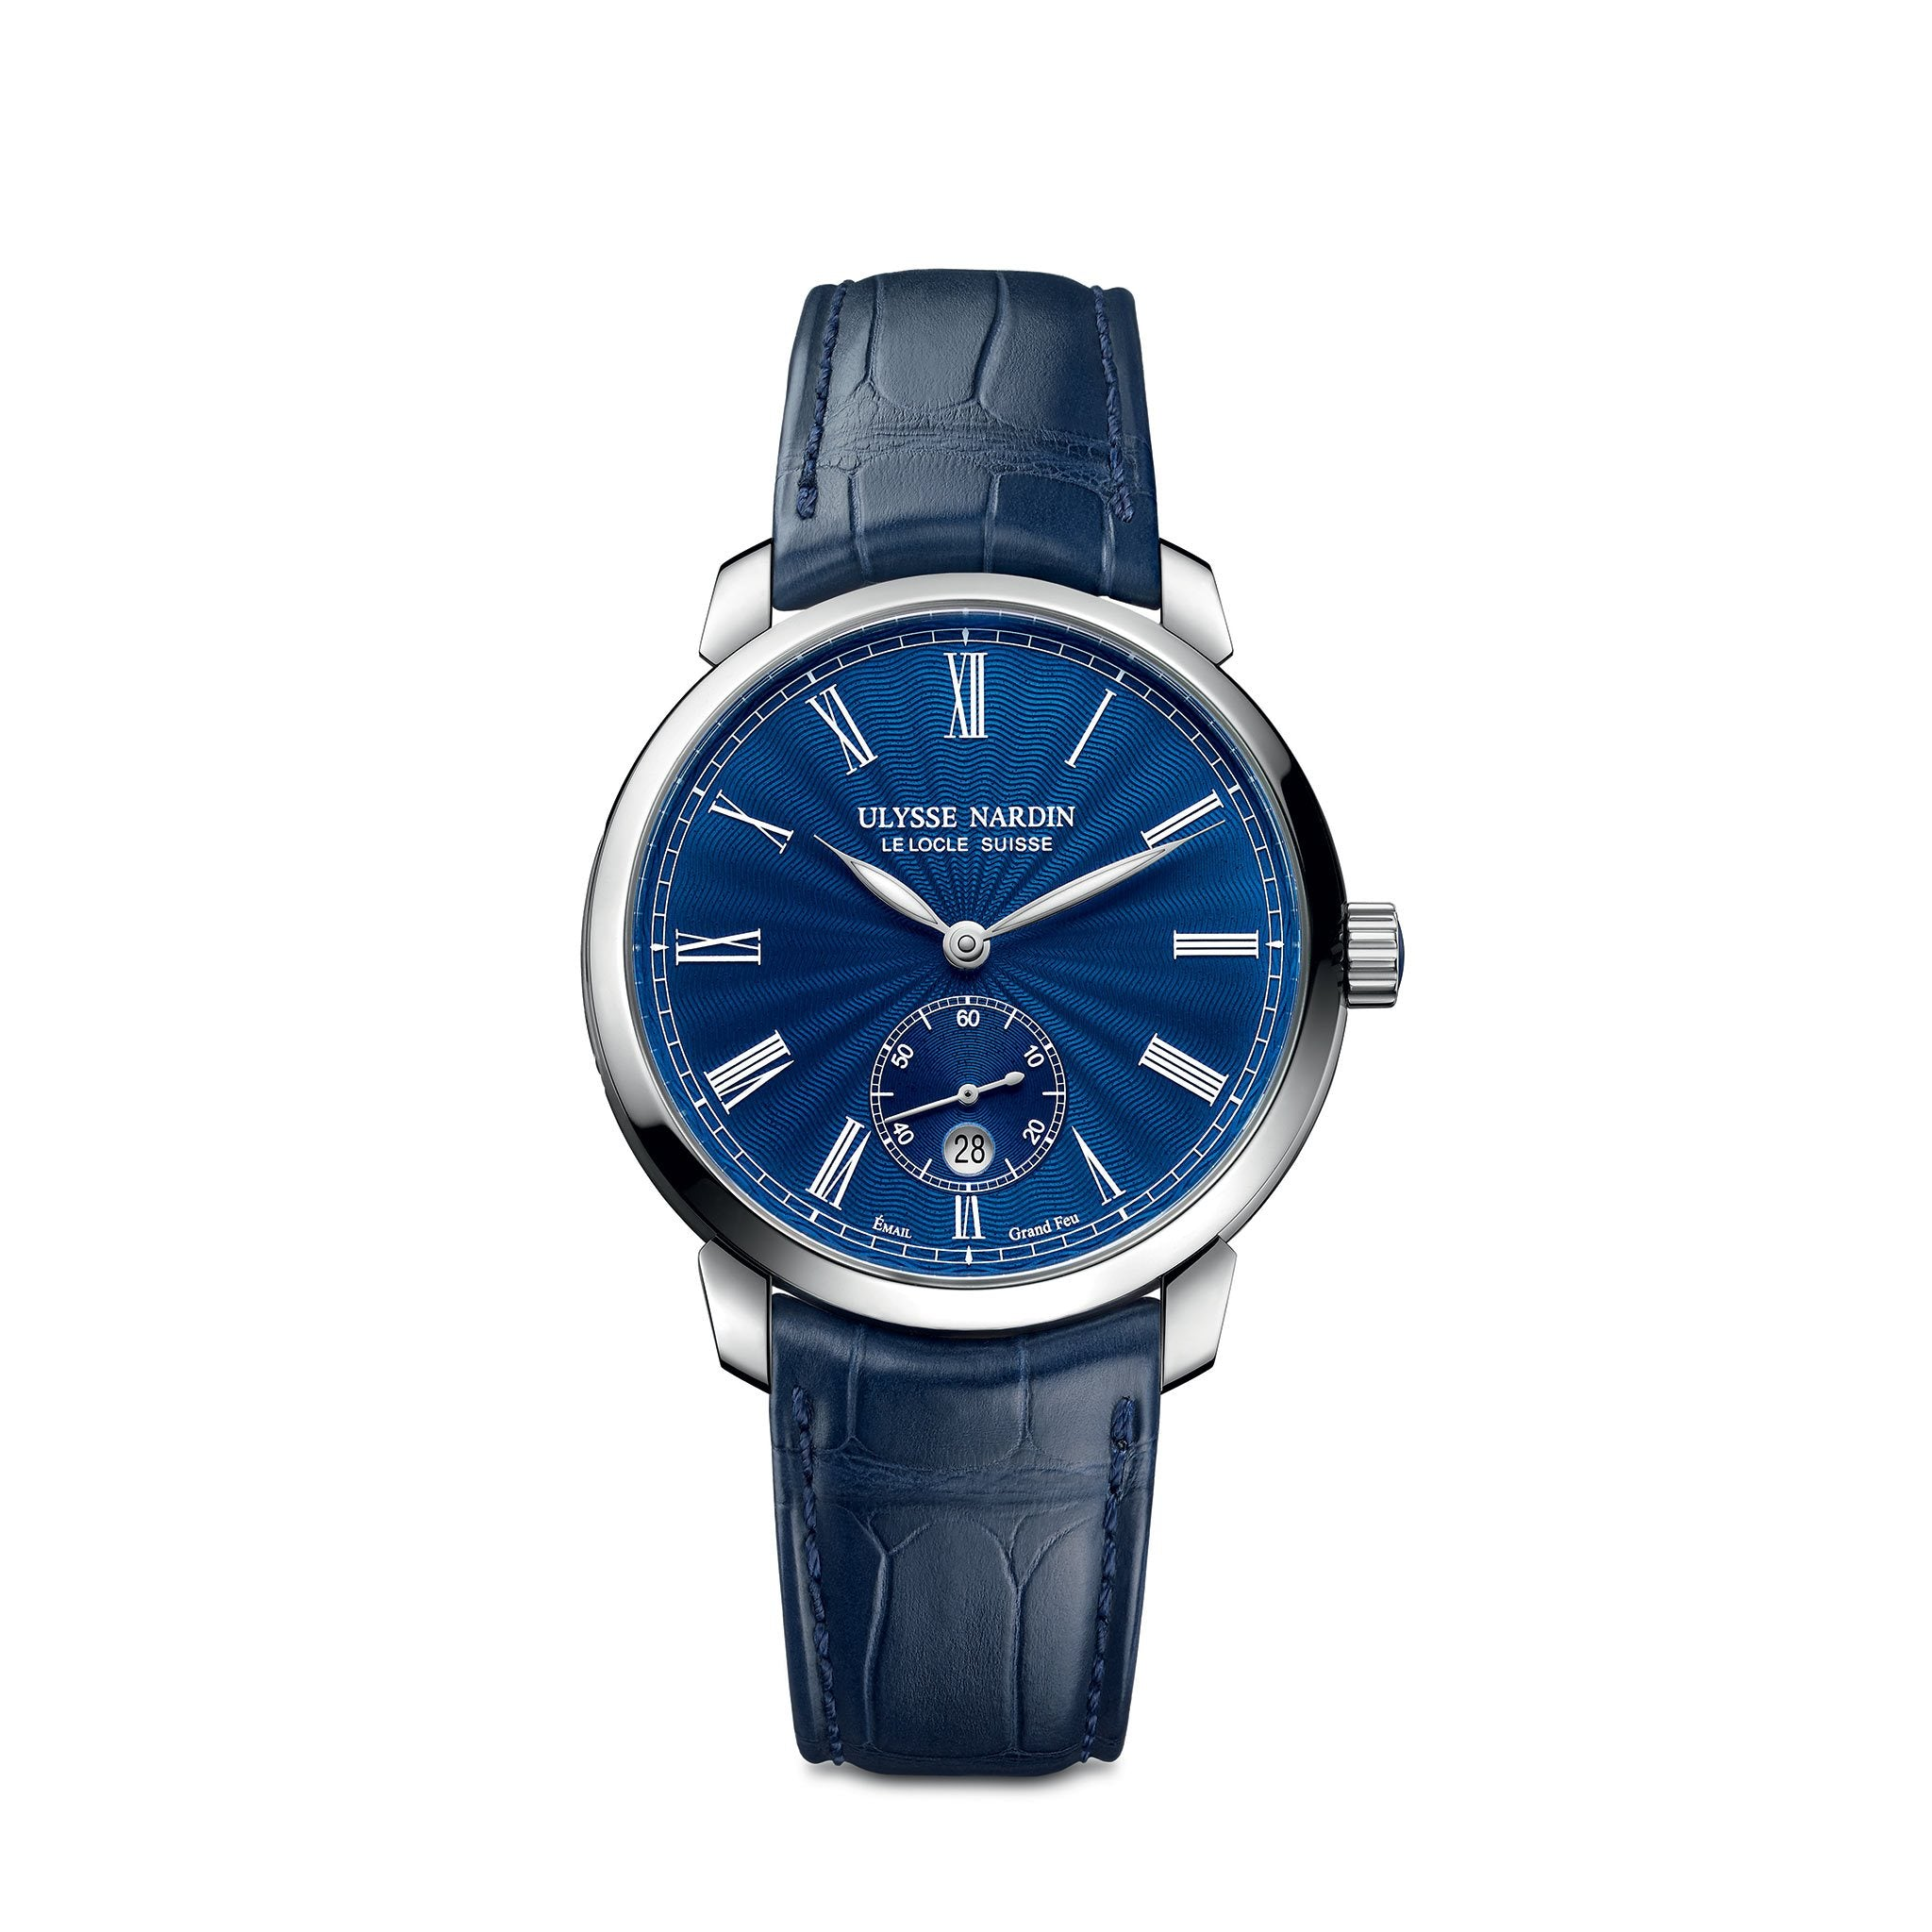 Ulysse Nardin Classico Small Second Manufacture (Ref. 3203-136-2/E3)